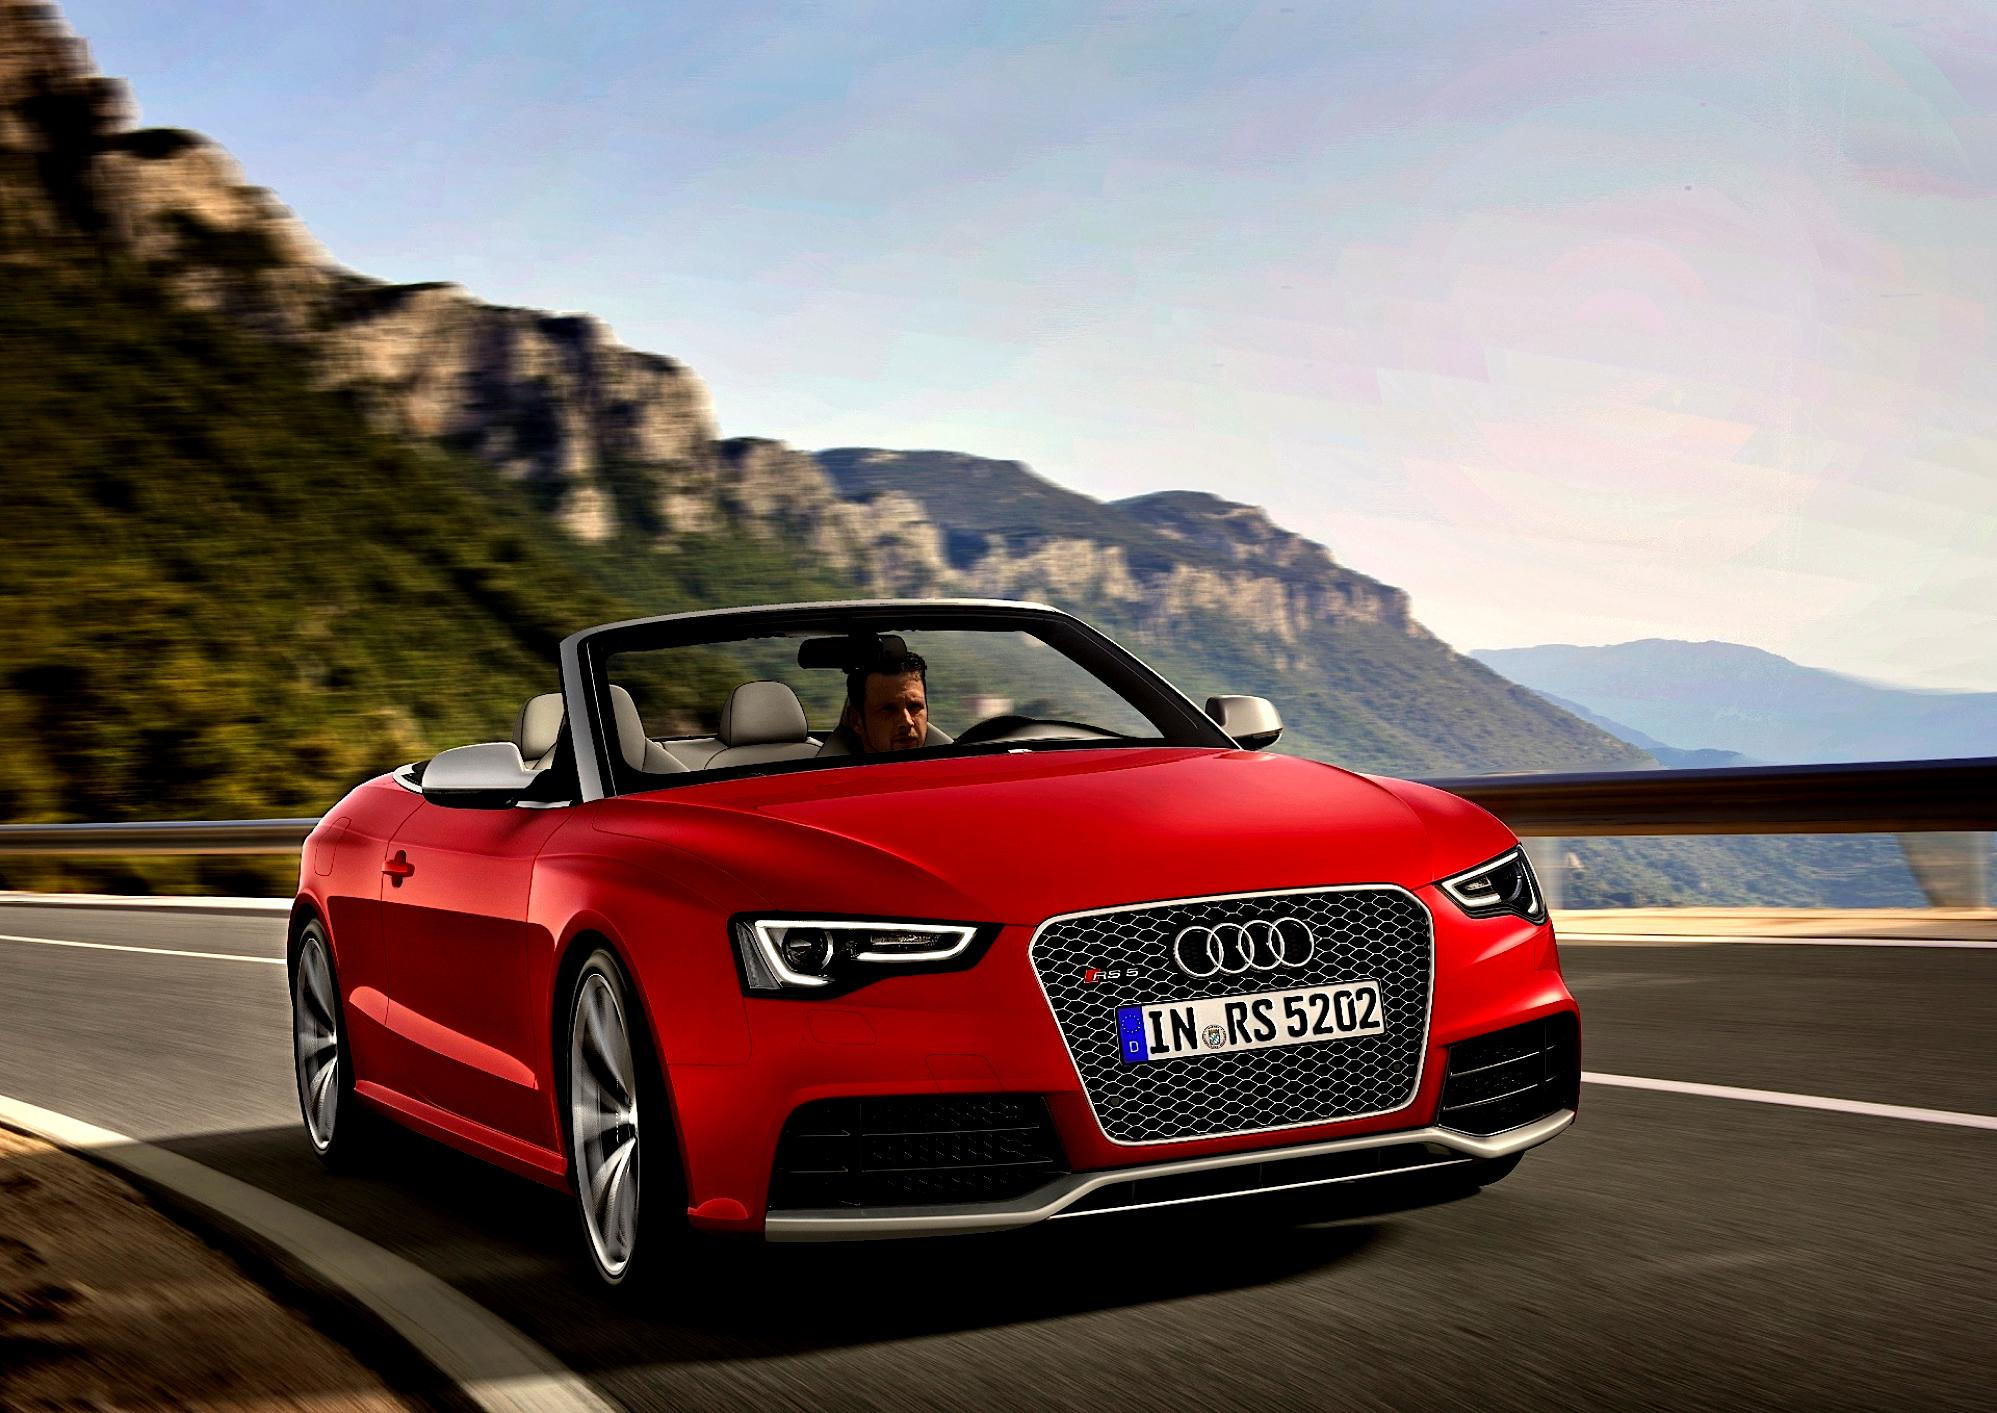 Audi RS5 Cabriolet 2013 #43